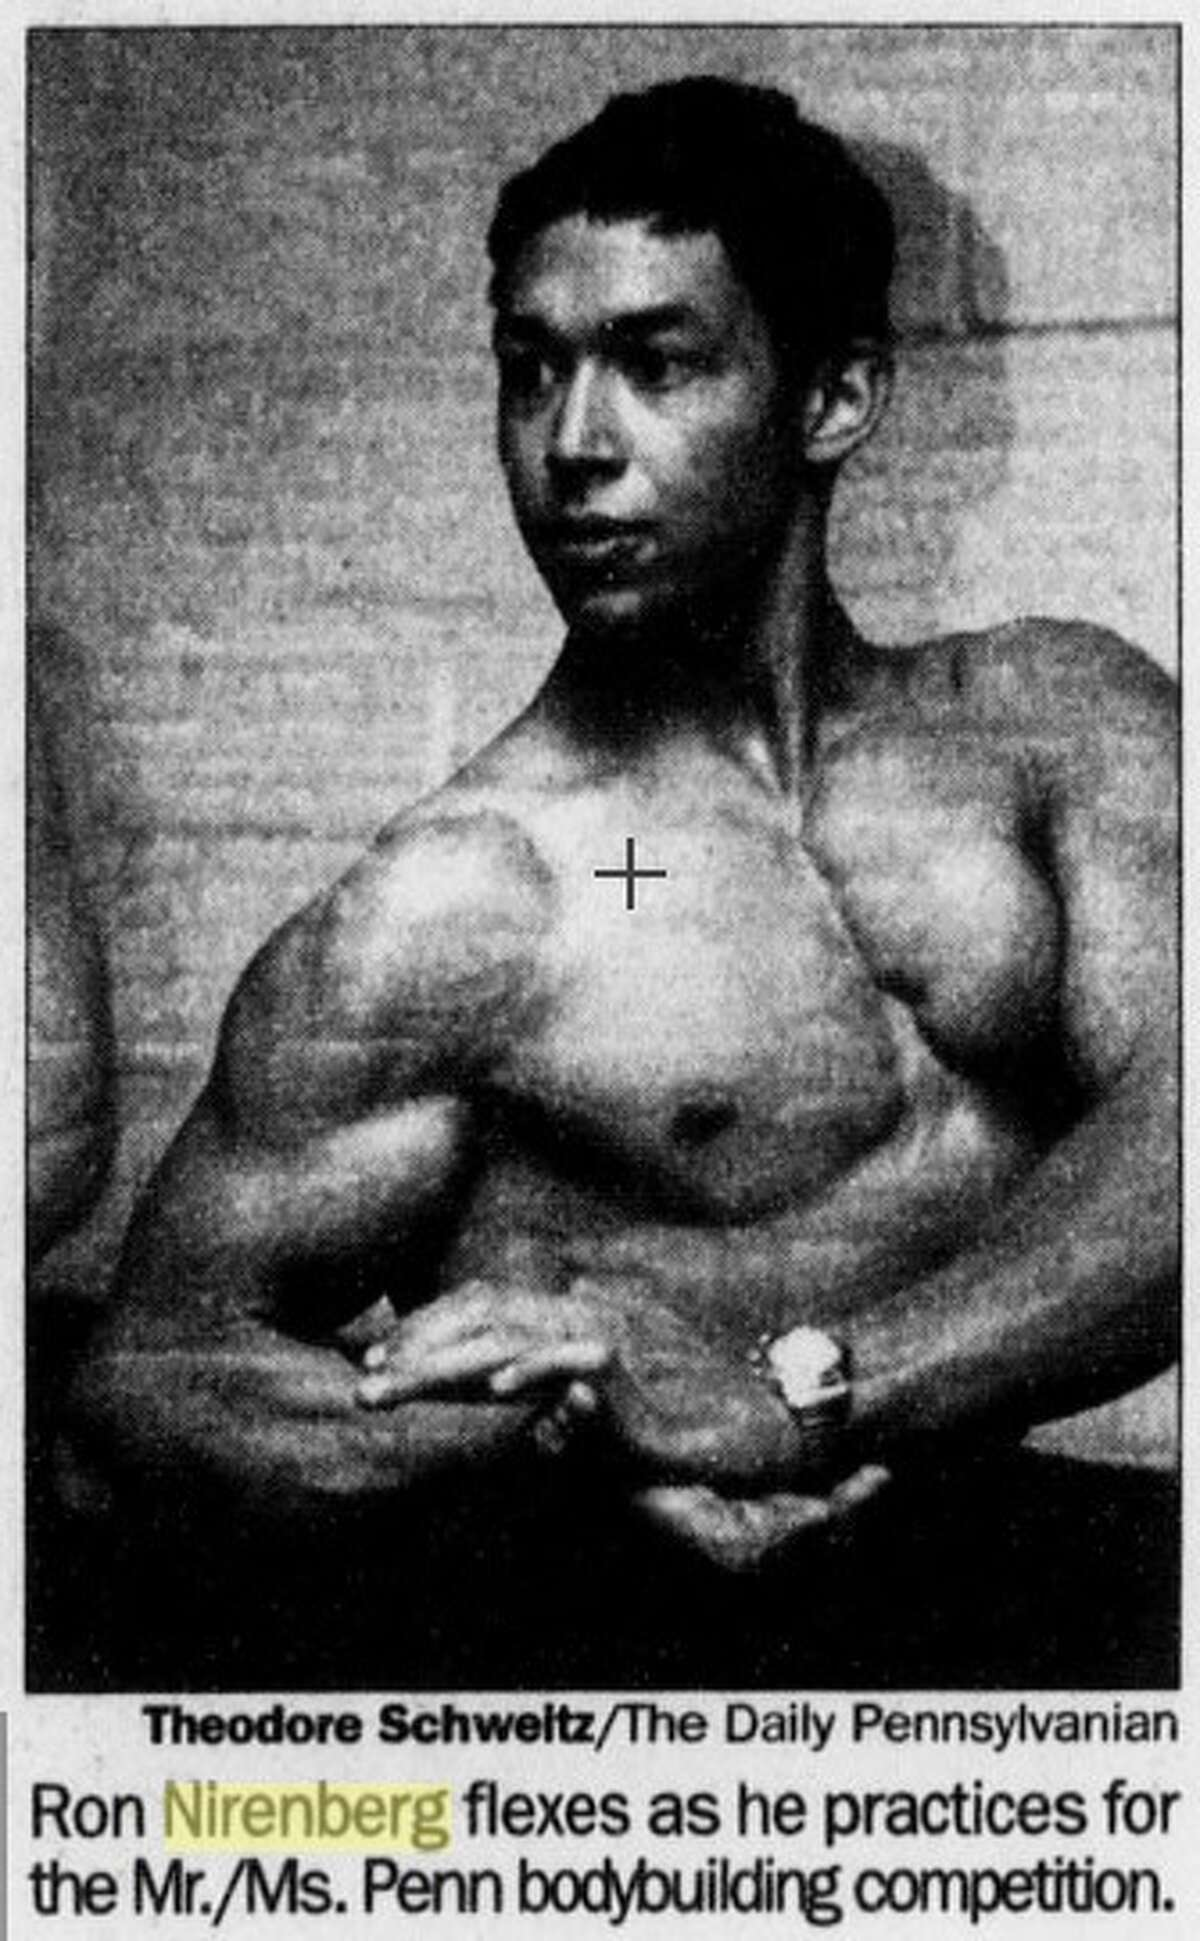 Ron Nirenberg appears in the University of Pennsylvania's newspaper The Daily Pennsylvanian in November 2000 ahead of a bodybuilding competition at the university.